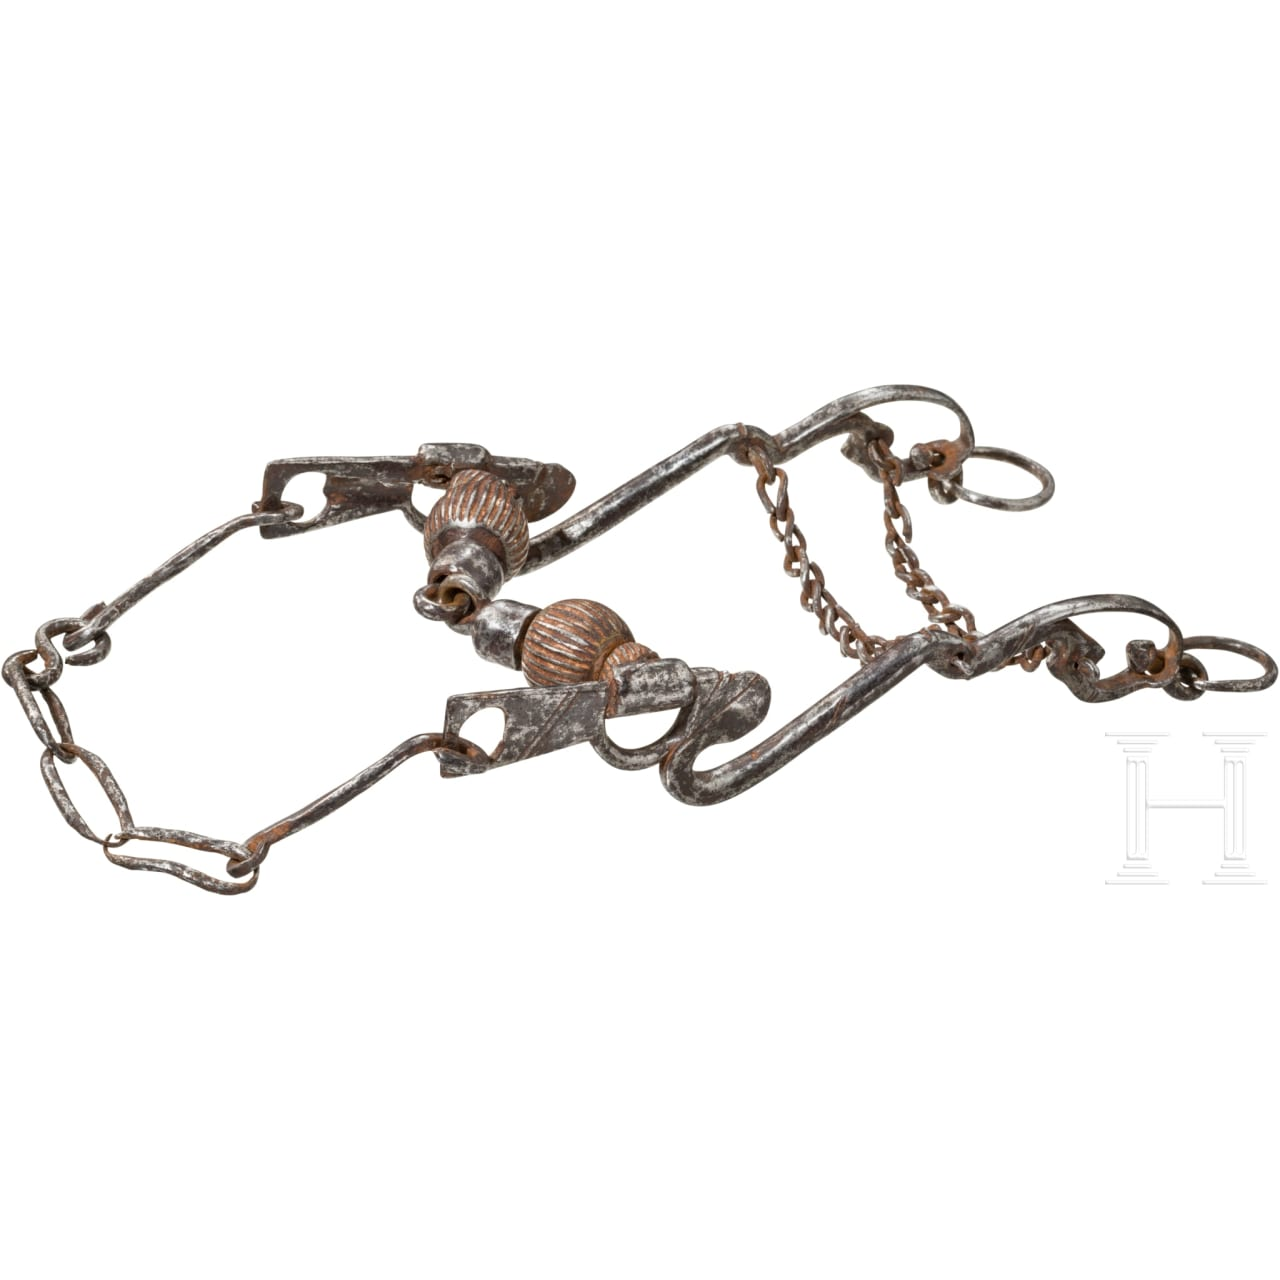 A French snaffle, late 17th century